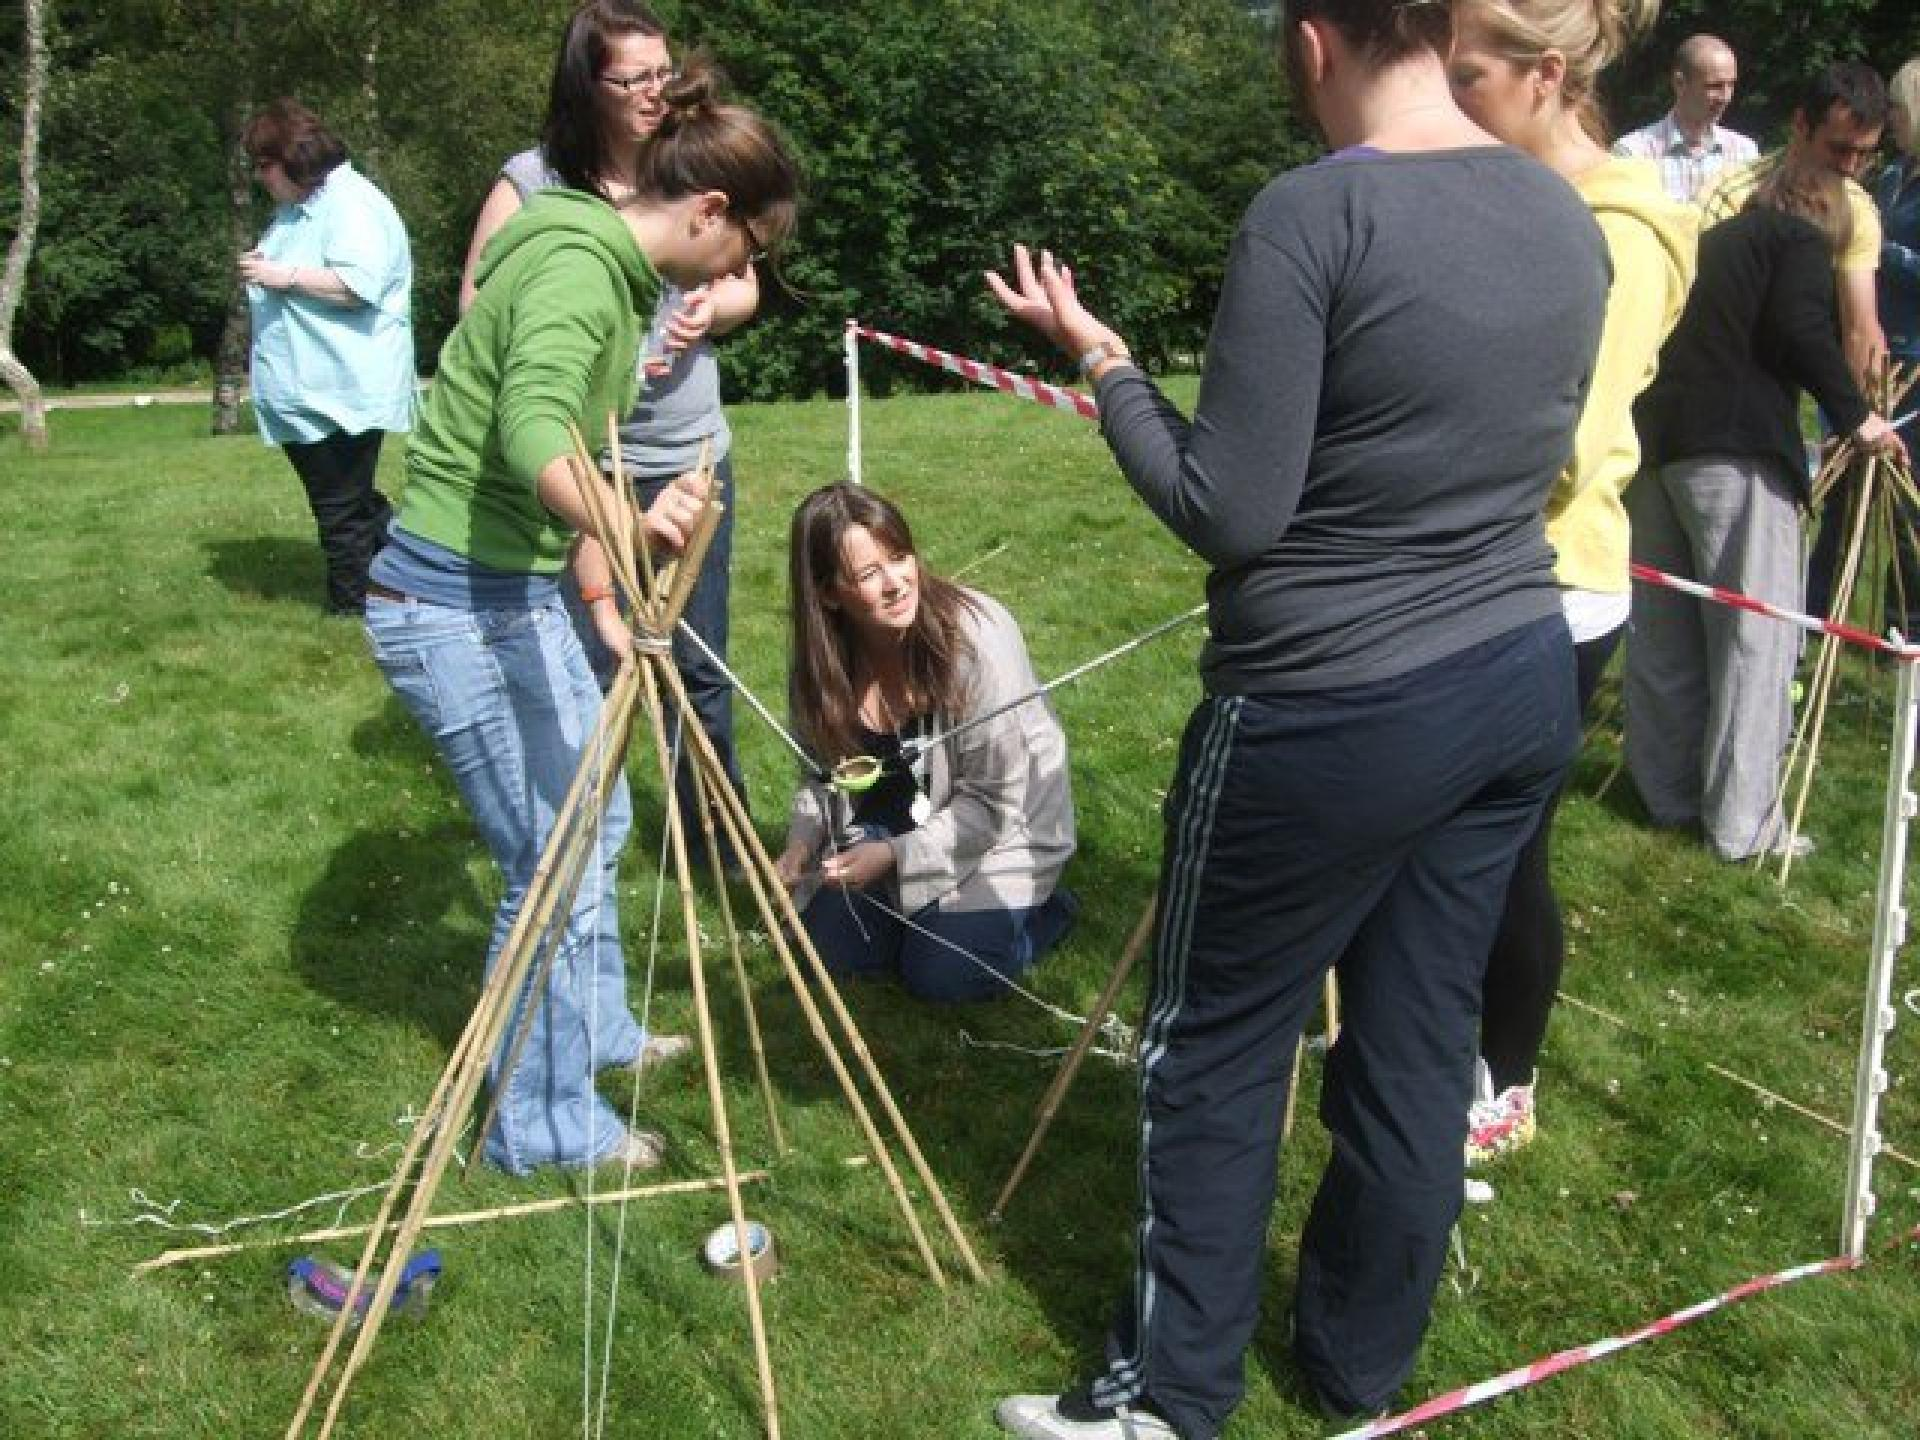 Team Building Aberdeen 15 July 2011